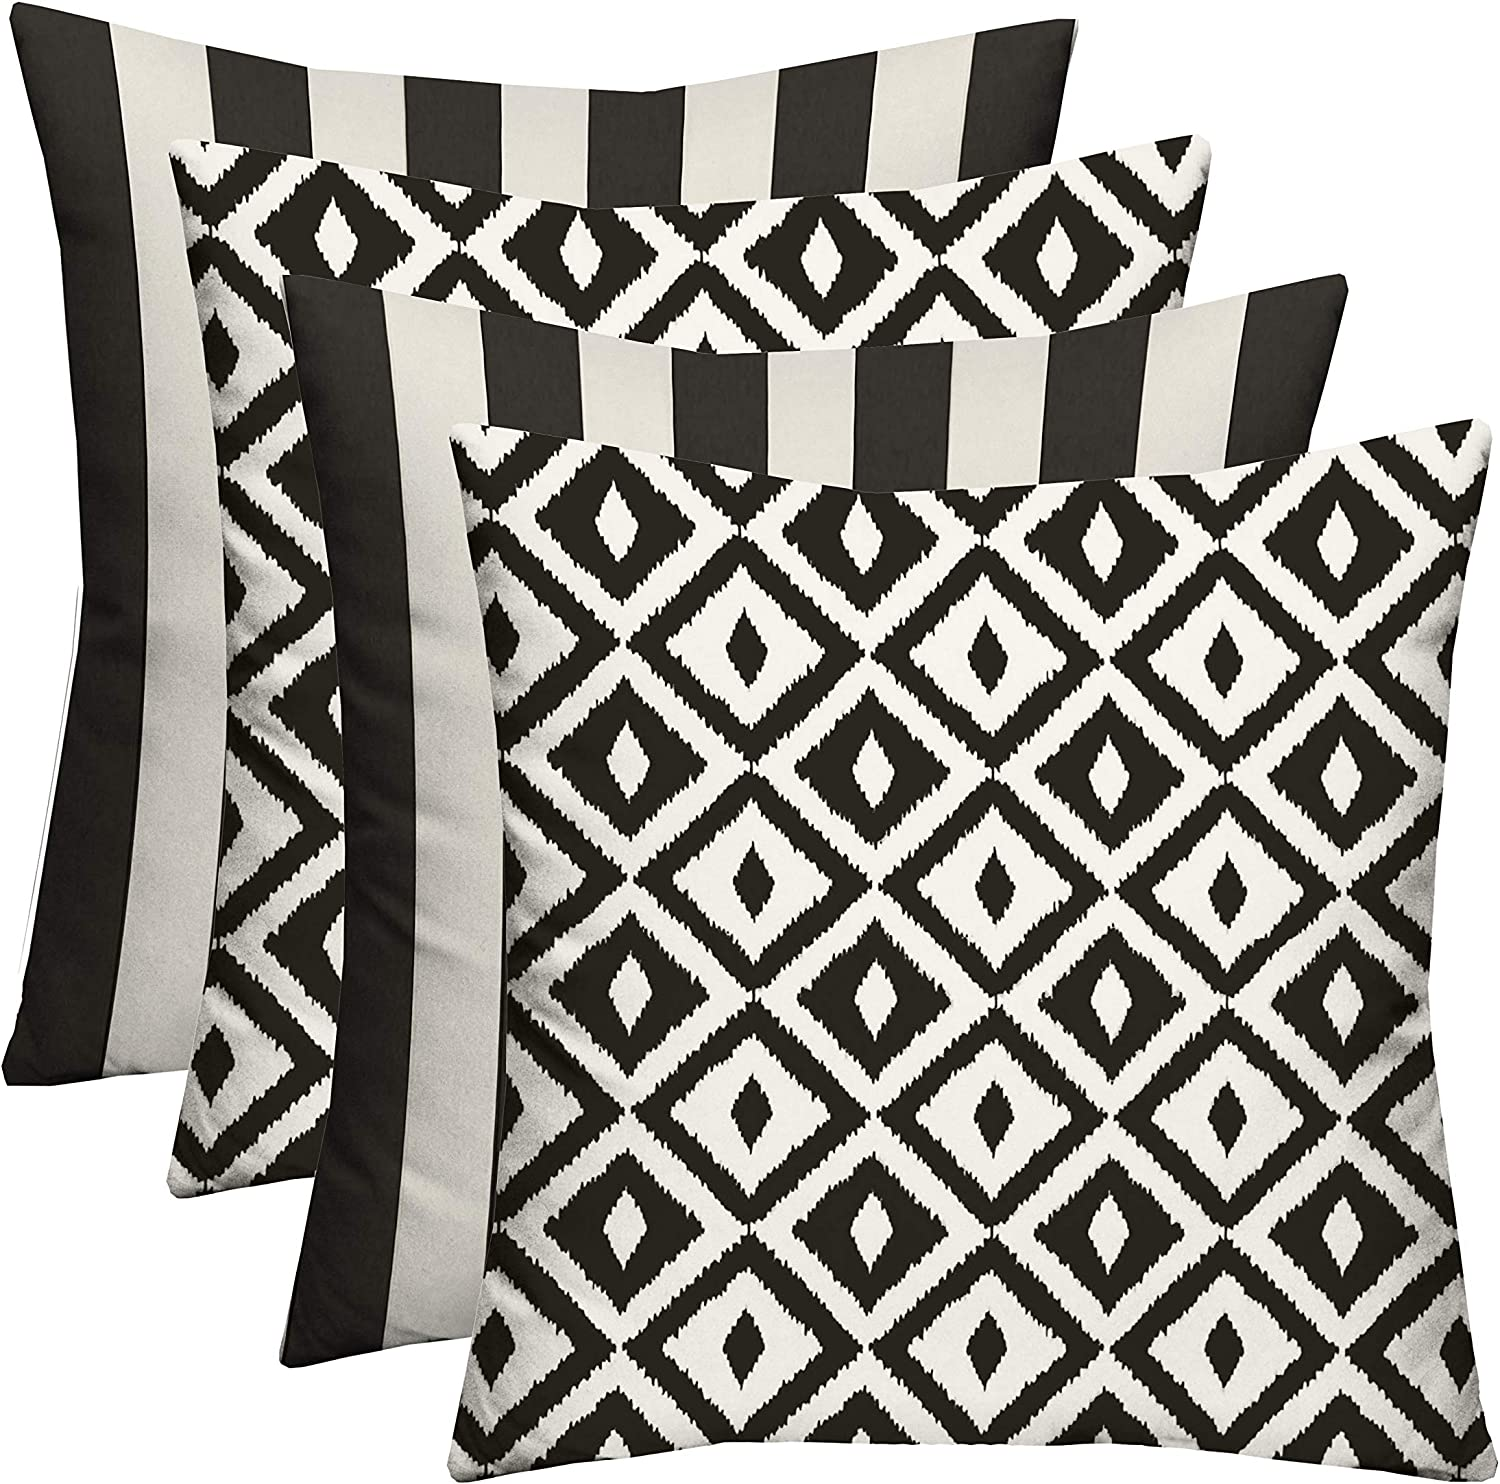 Set of 4 - Indoor / Outdoor Square Decorative Throw / Toss Pillows - Black and White Stripe Fabric & Black and White Aztec Geometric Fabric - Choose Size (20